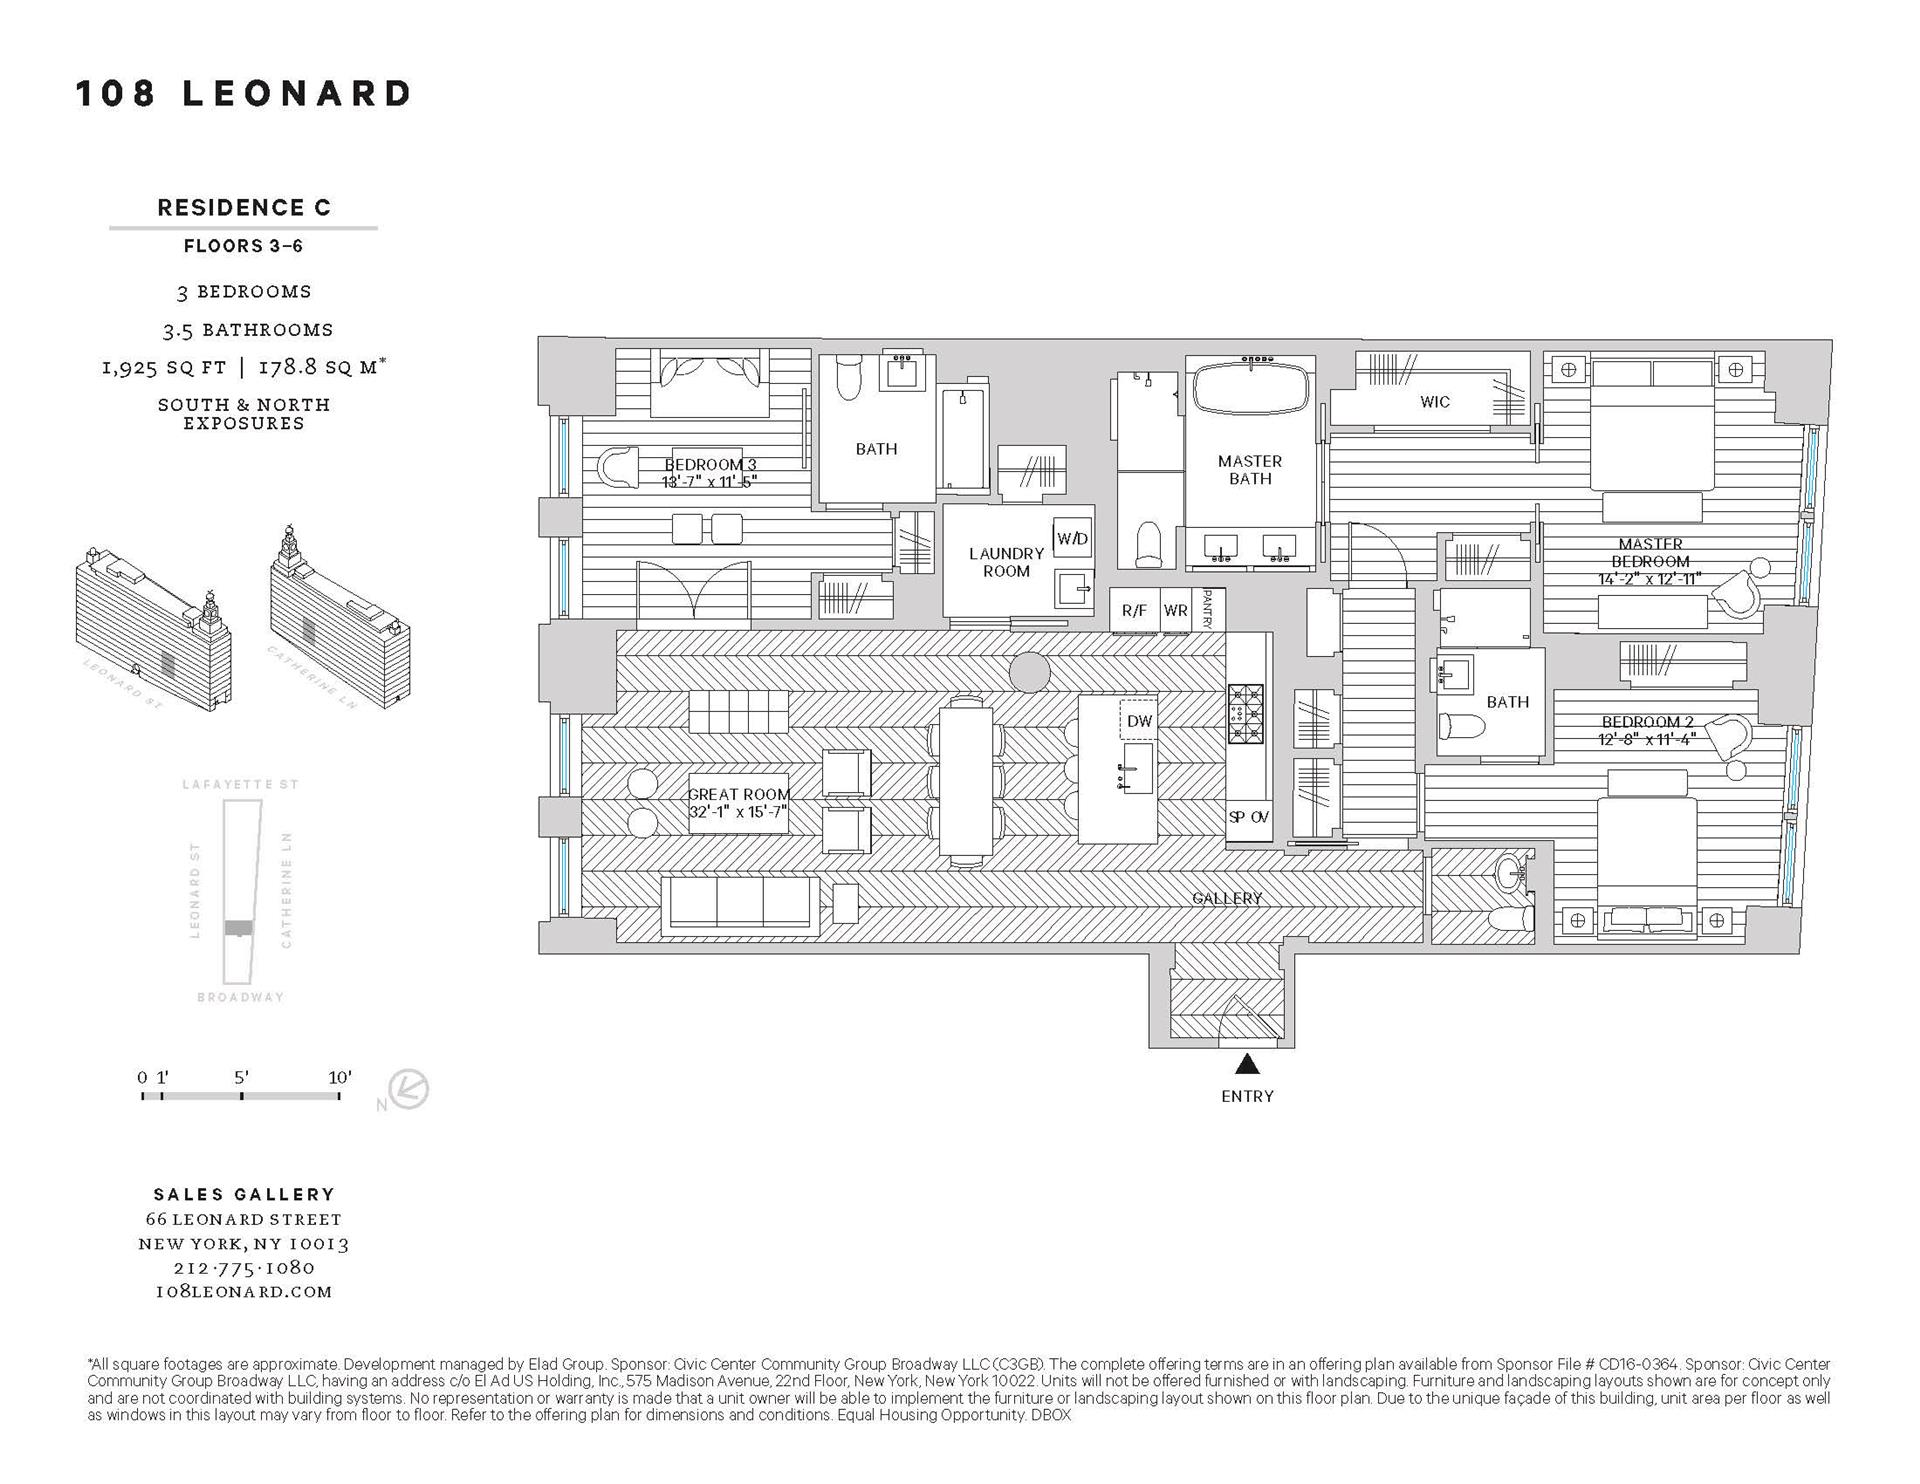 Floor plan of 108 Leonard St, 5C - TriBeCa, New York